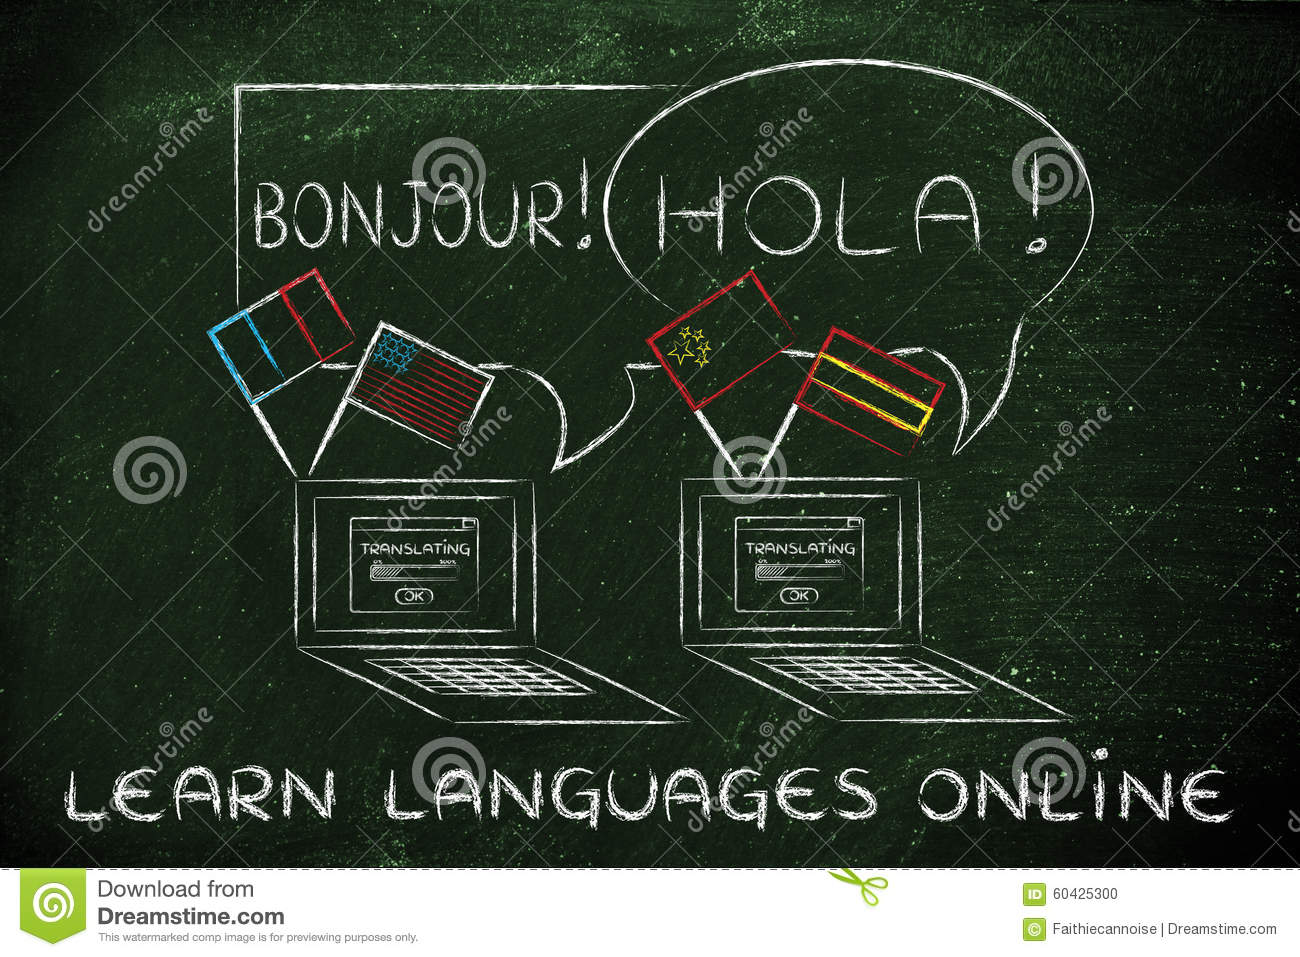 Learn a Language at These 14 Free Websites - lifewire.com